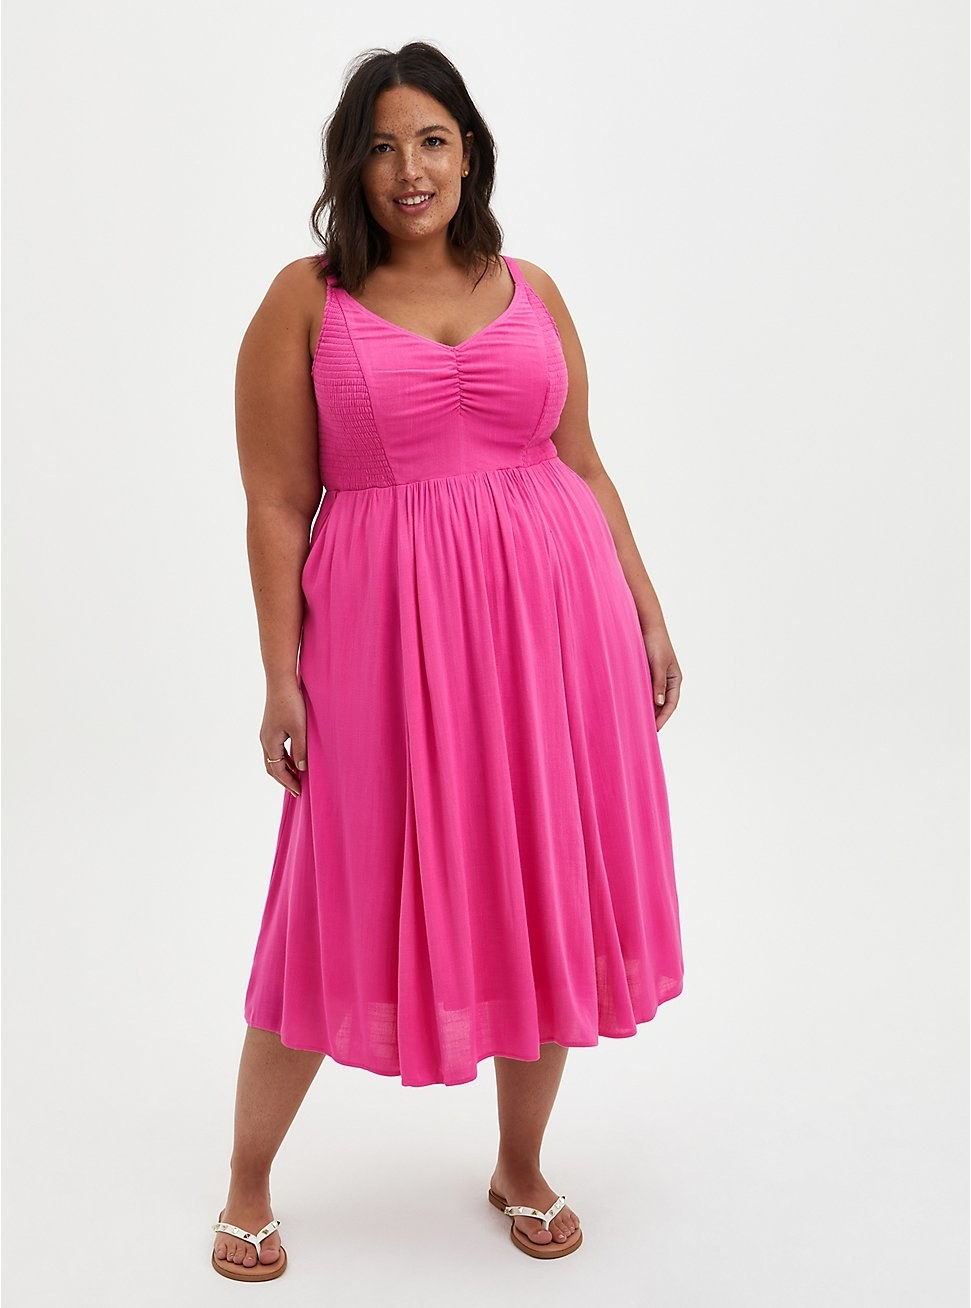 a model wearing the bright pink dress